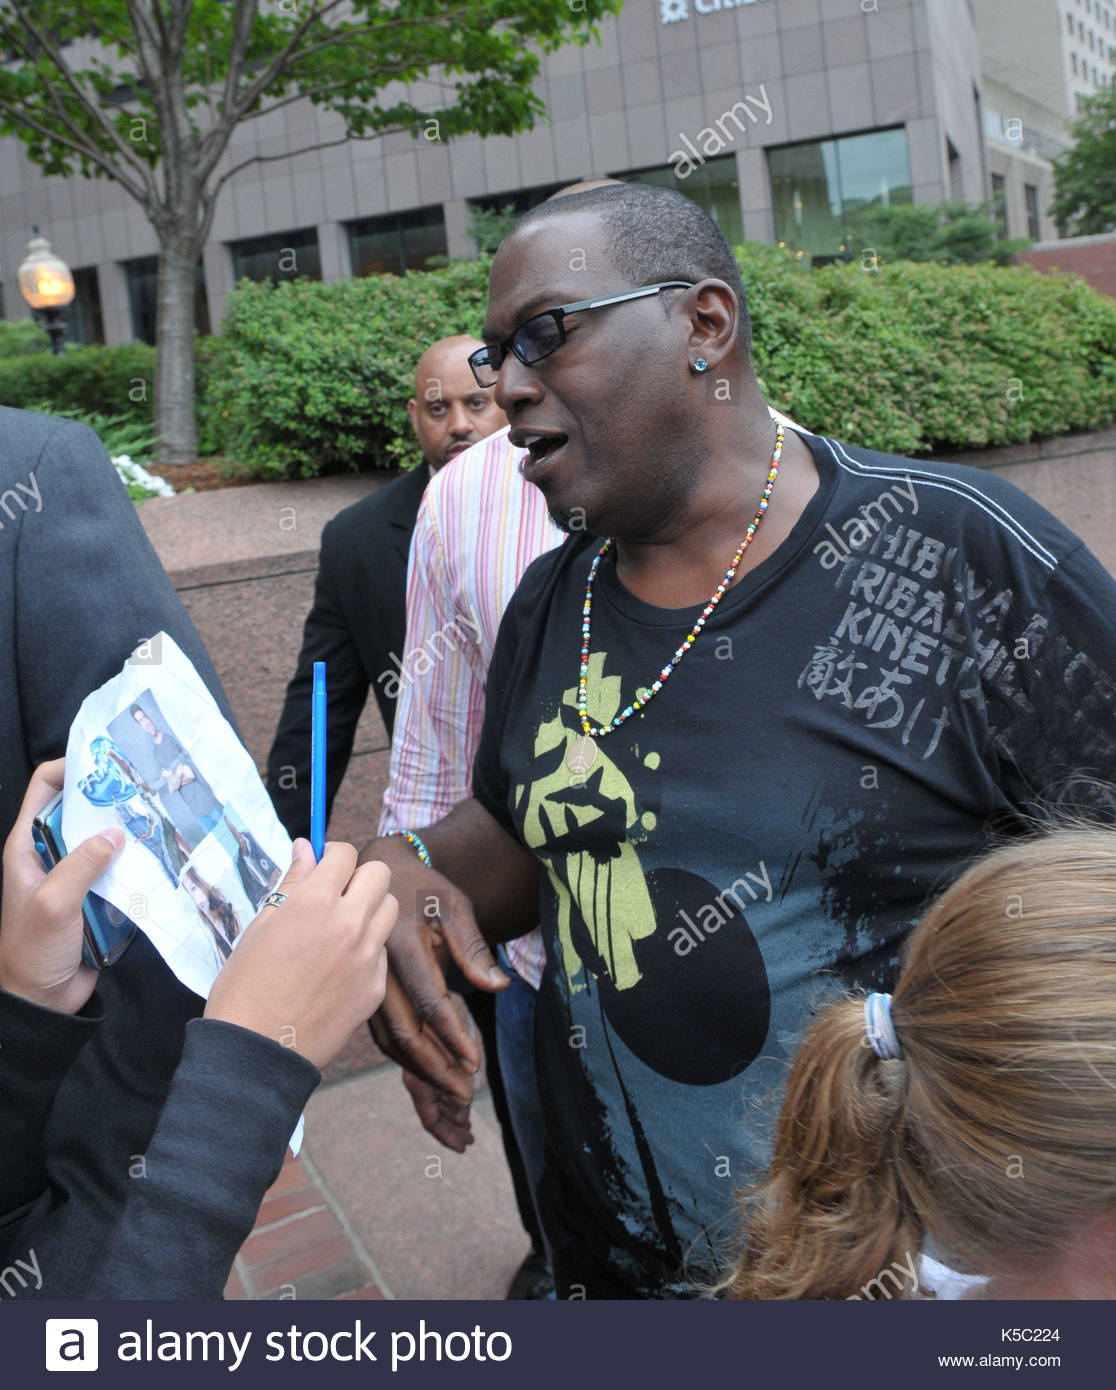 Randy jackson american idol judges stop to meet and greet fans american idol judges stop to meet and greet fans guest judge victoria beckham doesnt do the same m4hsunfo